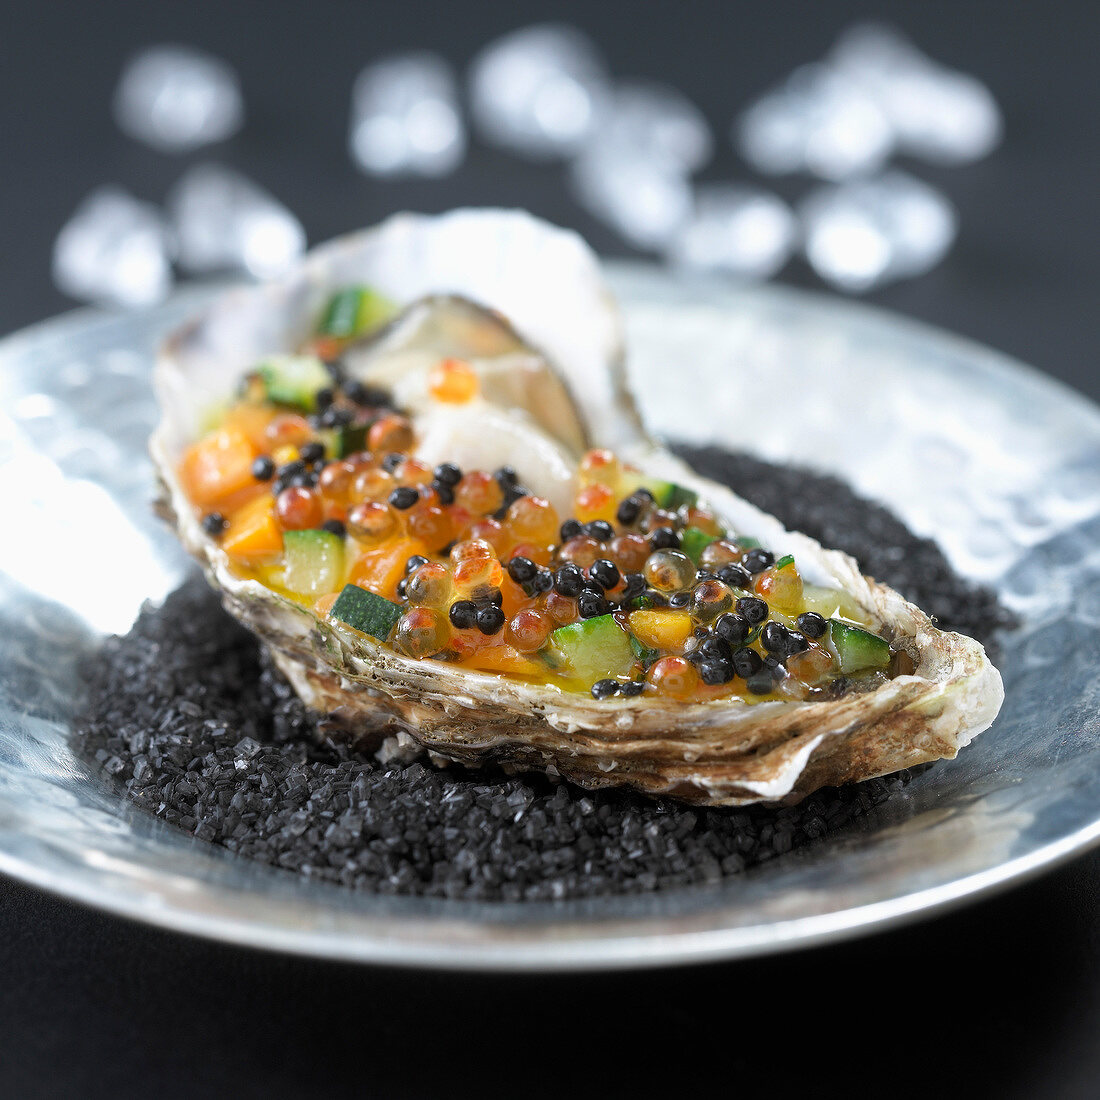 Cold oyster with fish roe and small vegetables